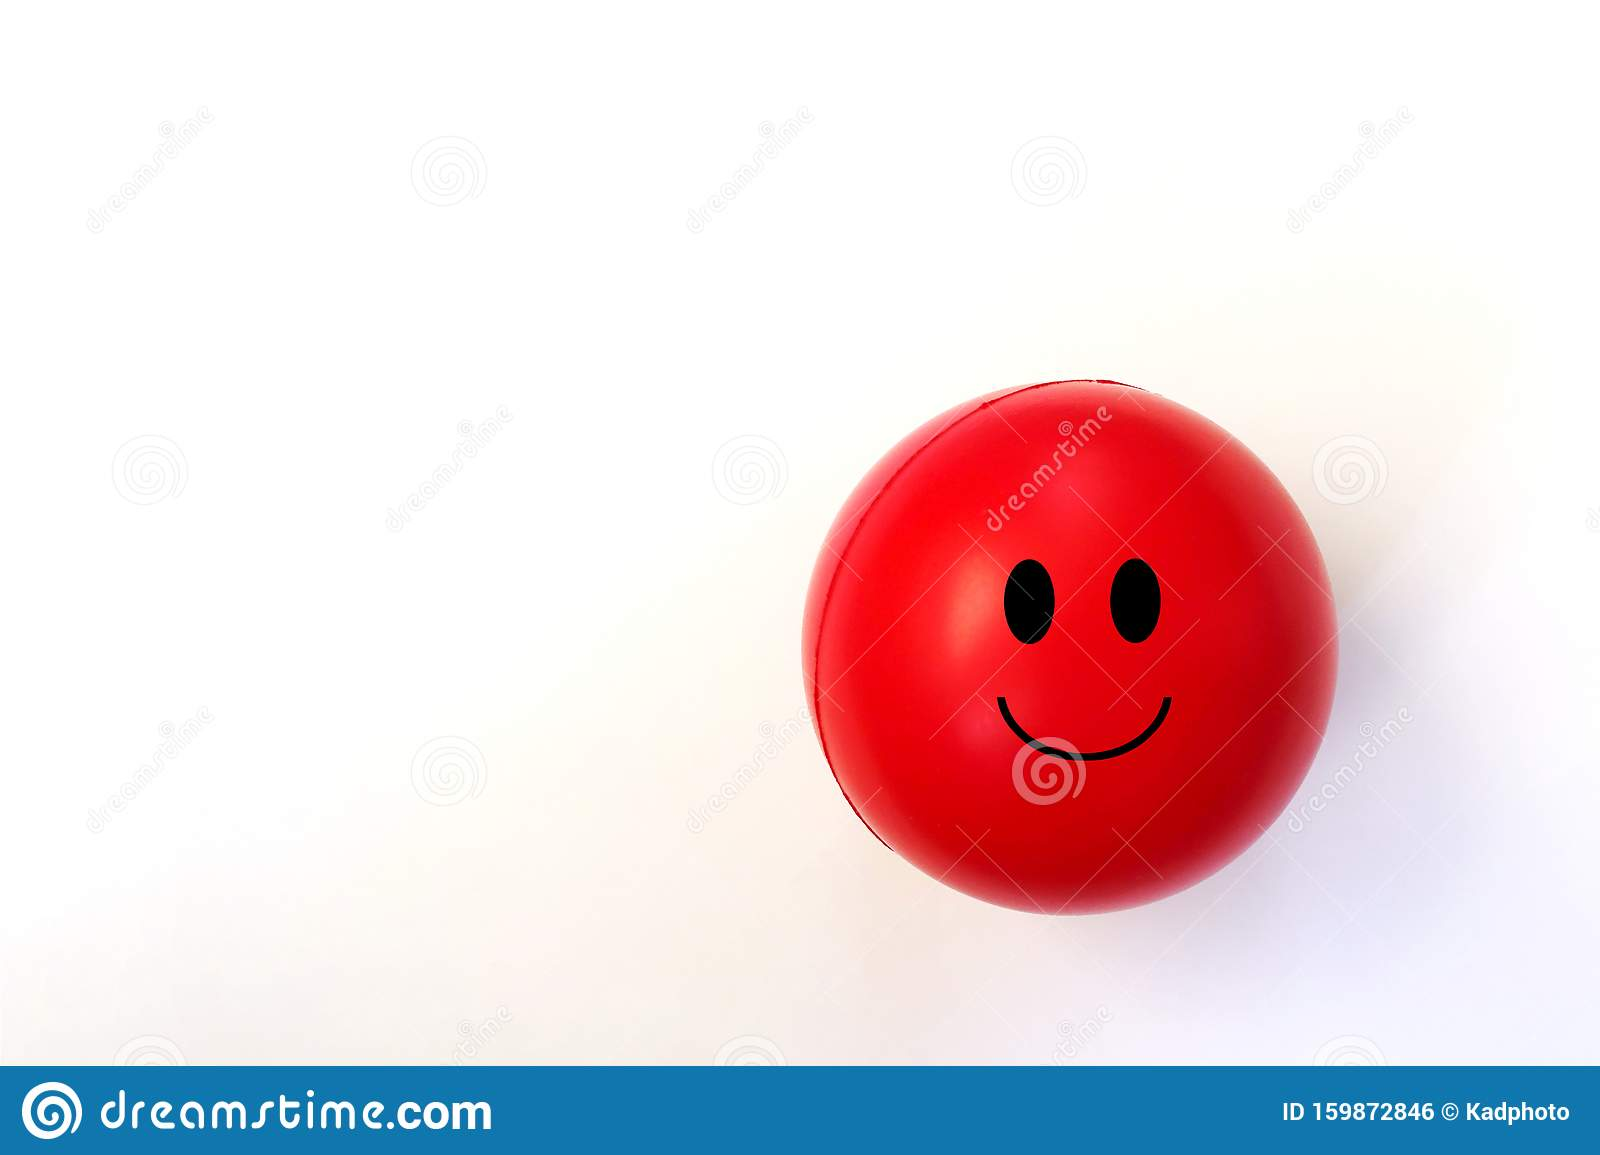 Red Smiling Emoji Ball against a White Background